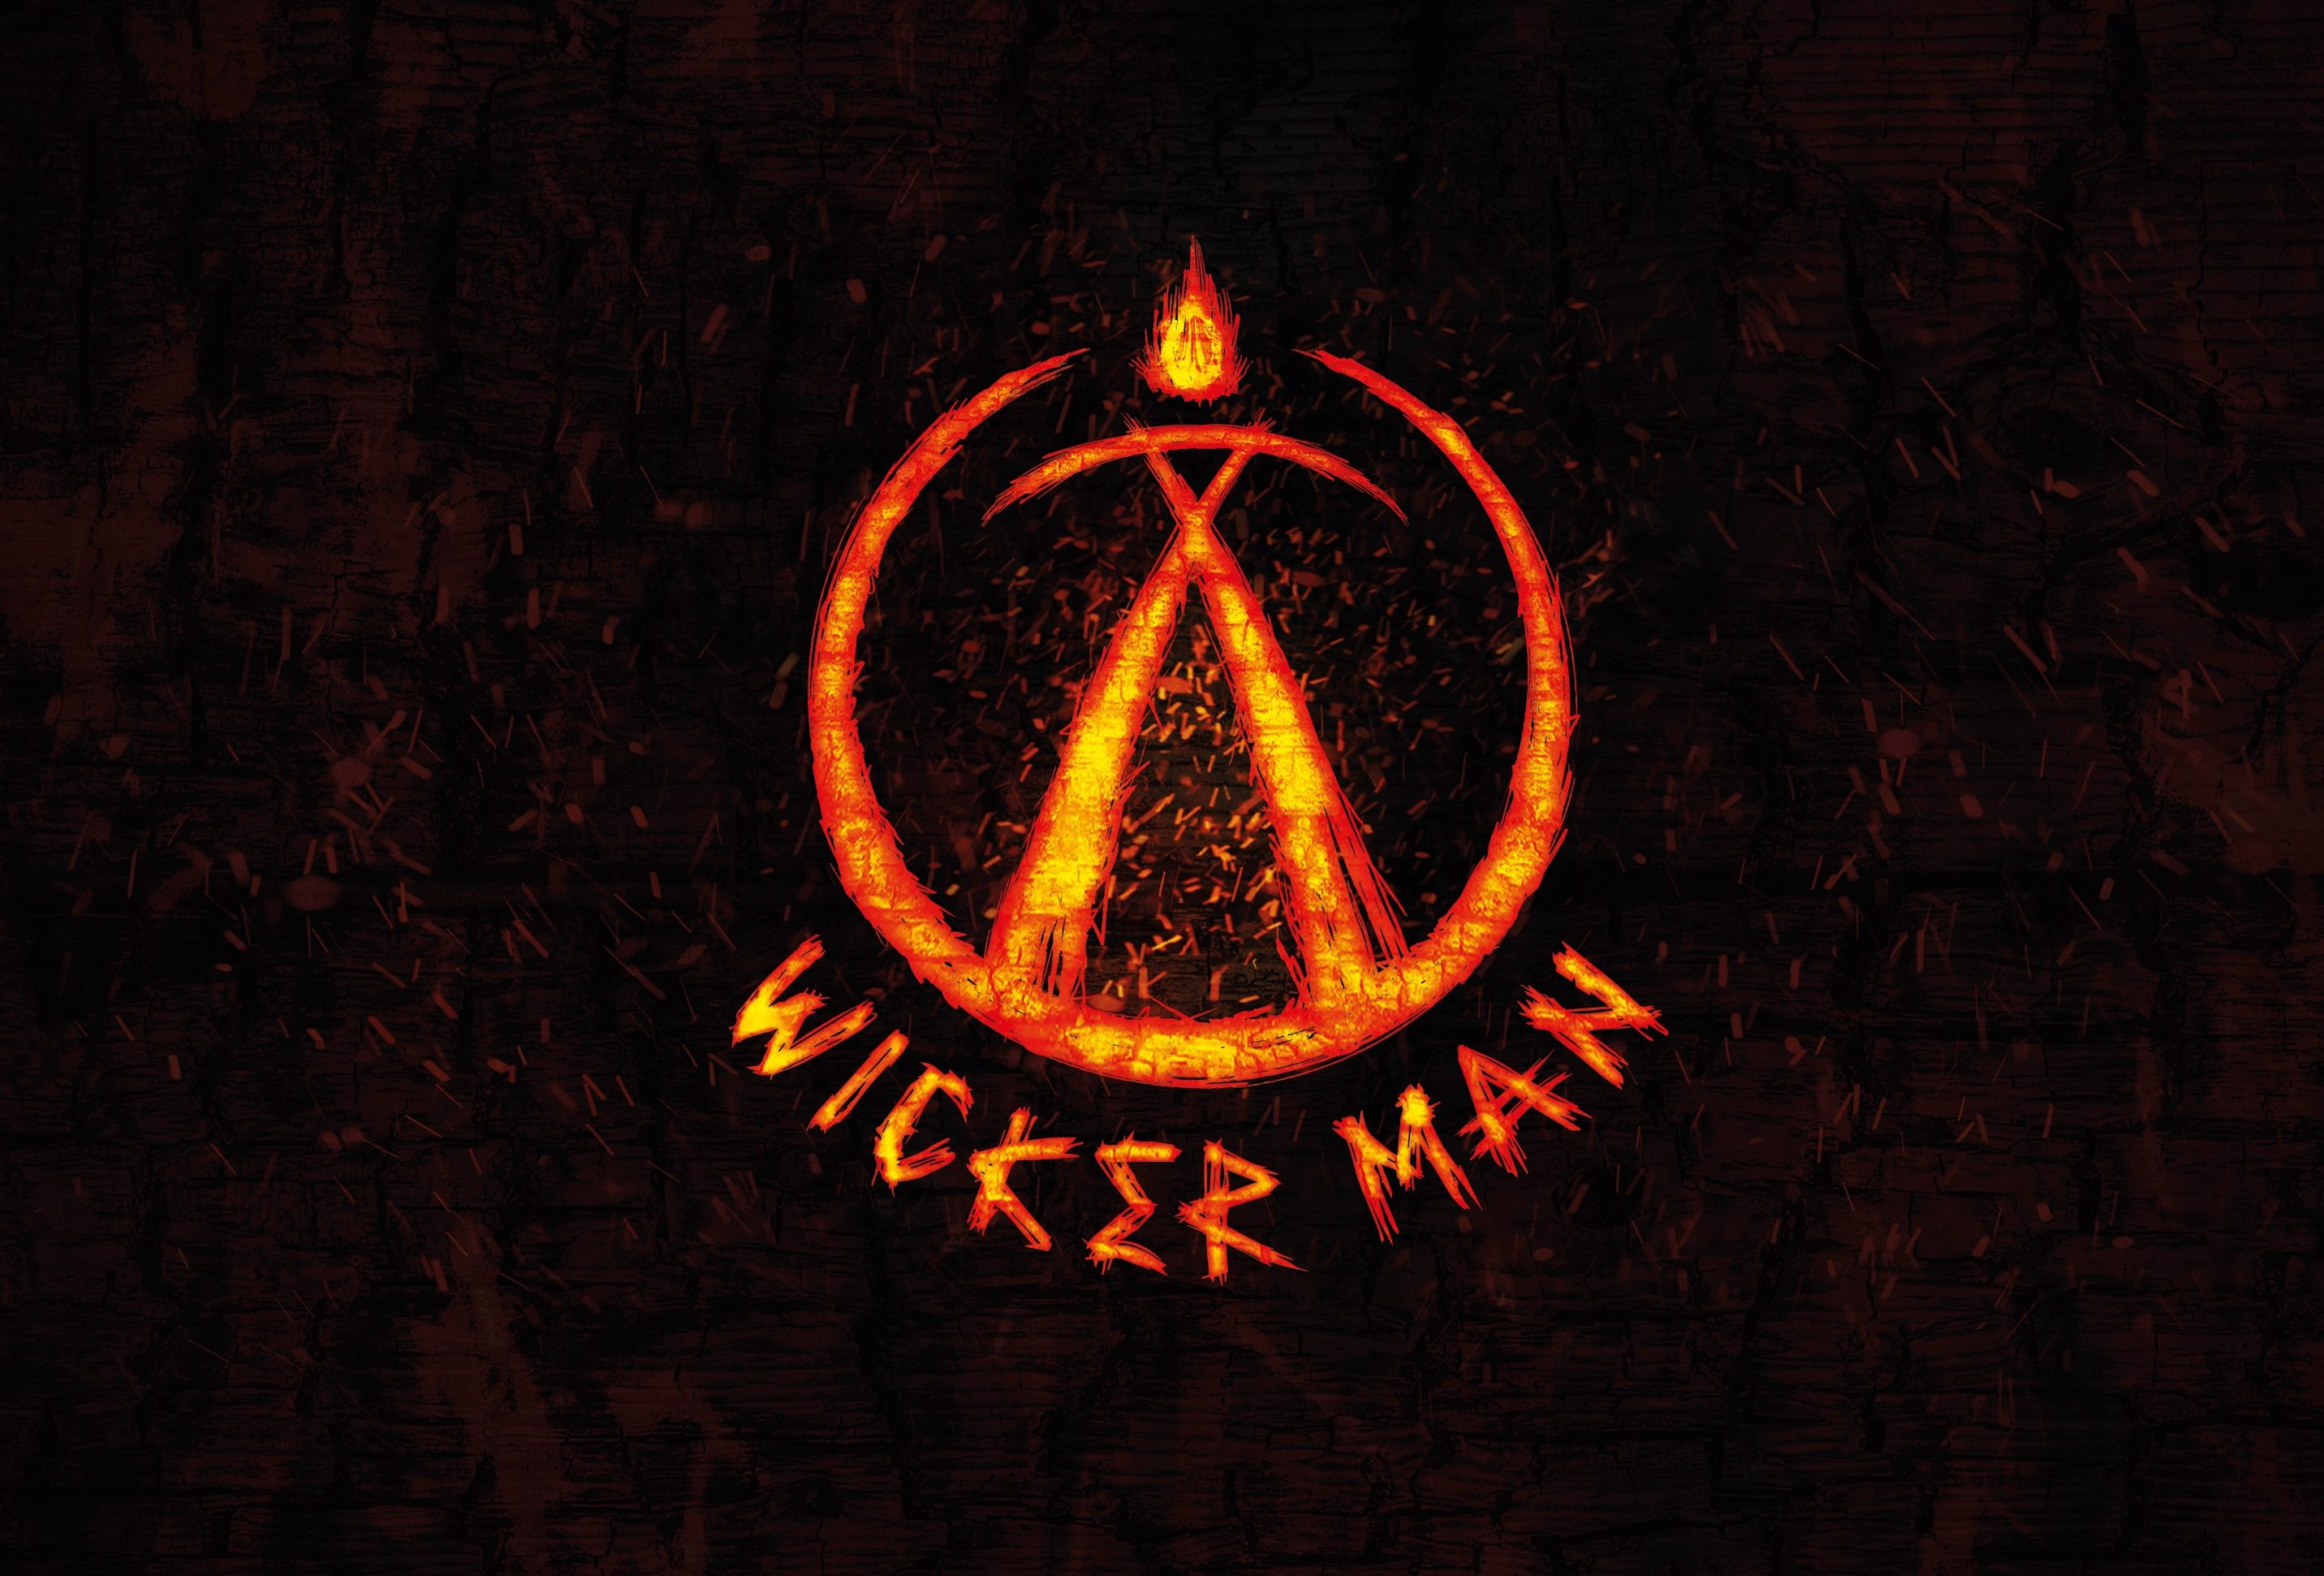 The final Wicker Man Logo